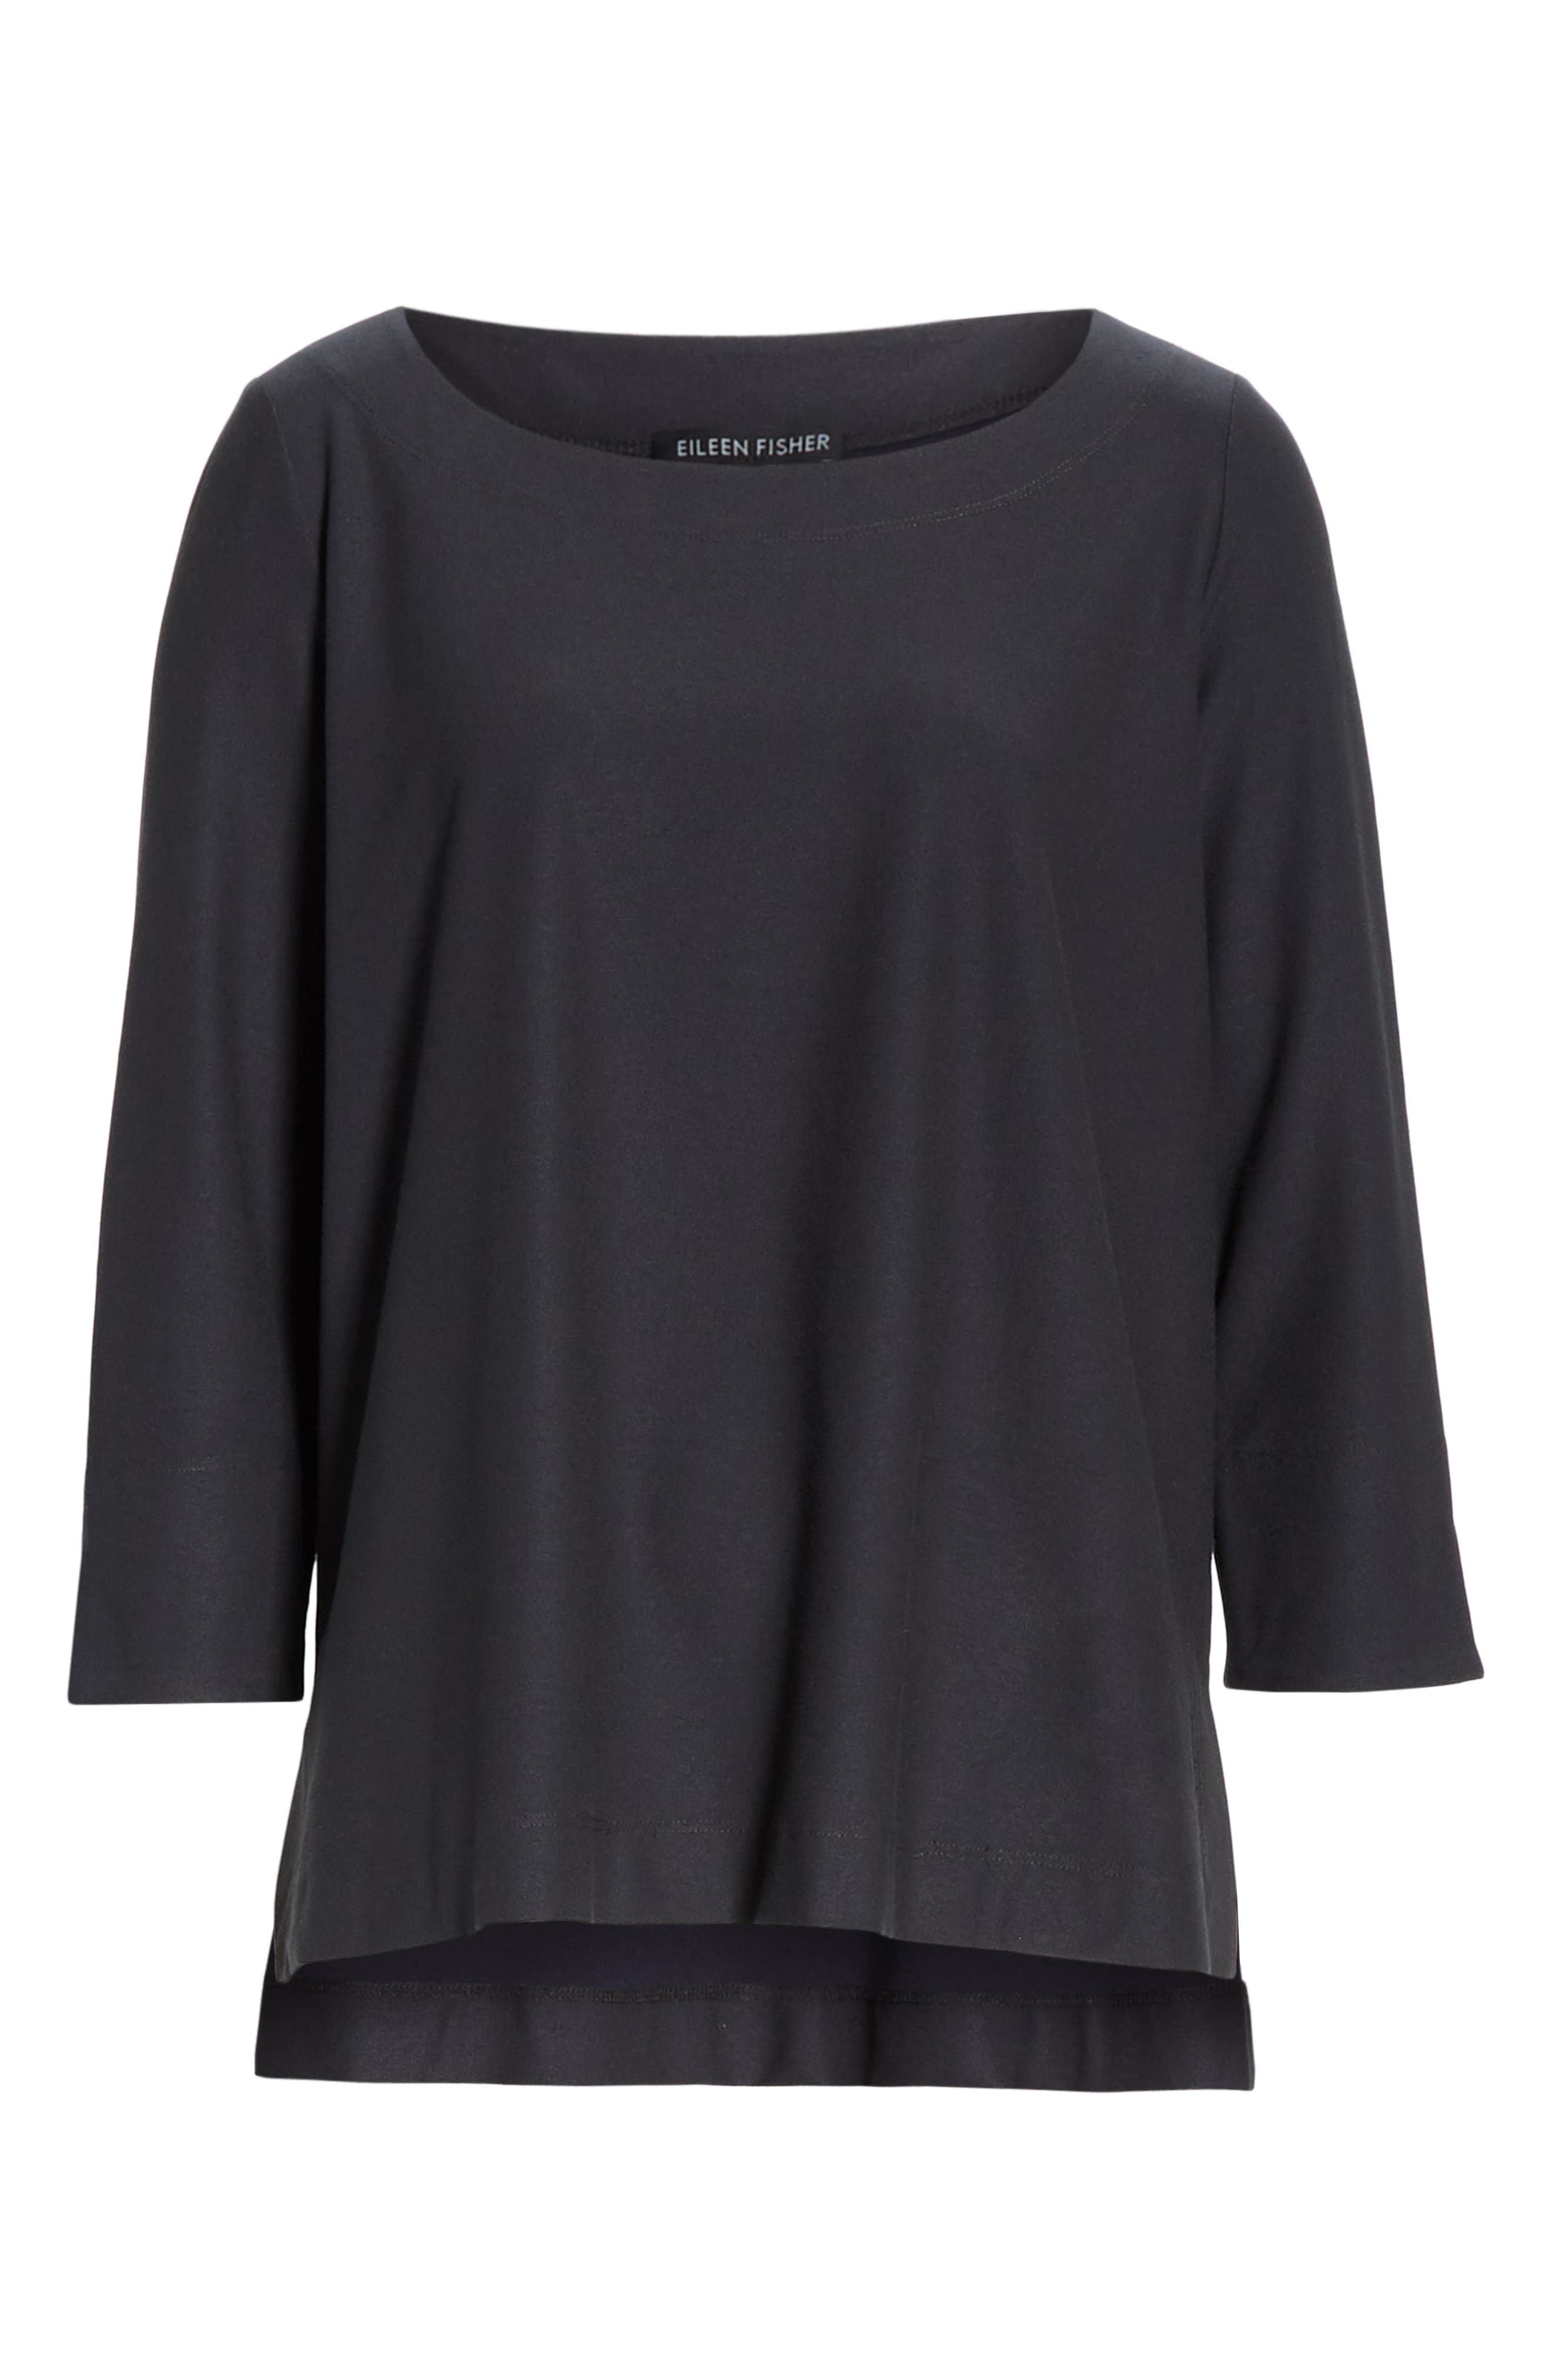 EILEEN FISHER,                             Boxy Jersey Top,                             Alternate thumbnail 6, color,                             GRAPHITE